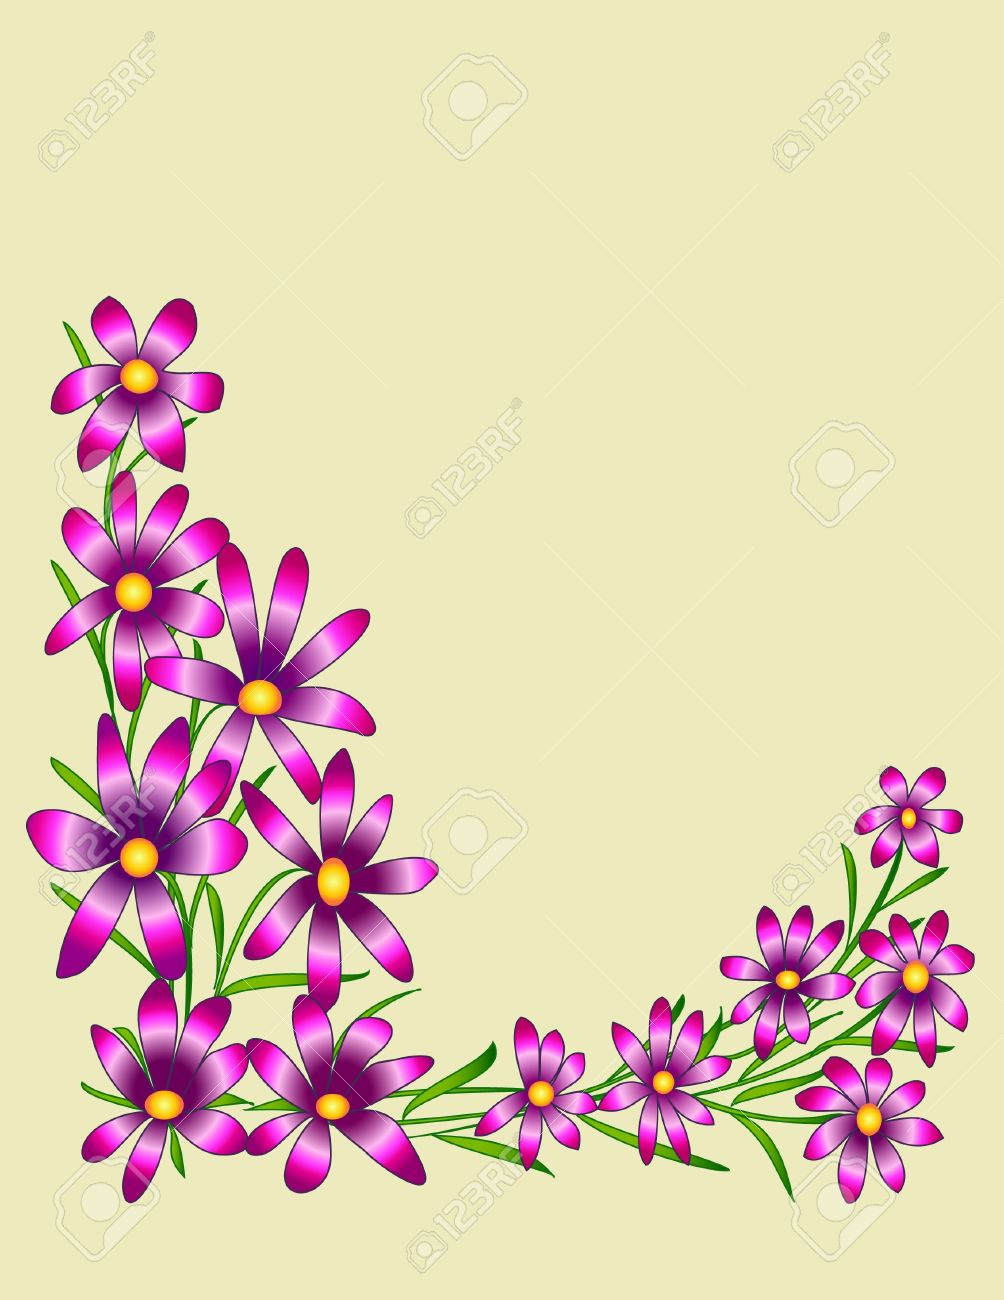 Beautiful Designs floral designs on a beautiful background royalty free cliparts